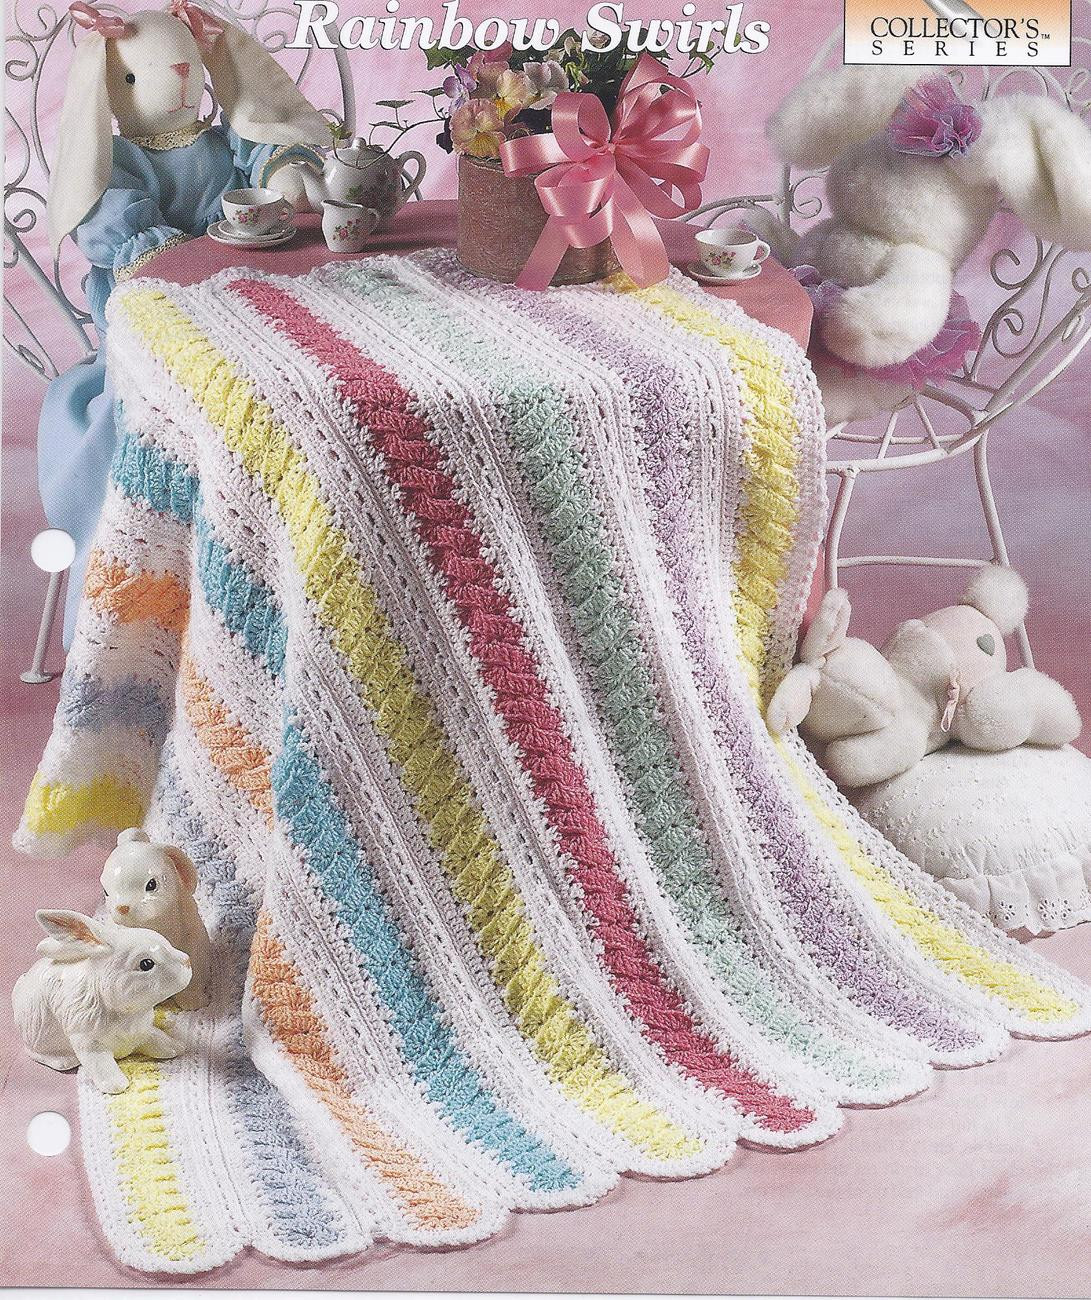 Crochet Afghan Patterns Fresh Rainbow Swirls Baby Afghan Crochet Pattern Baby & Children Of New 40 Pics Crochet Afghan Patterns